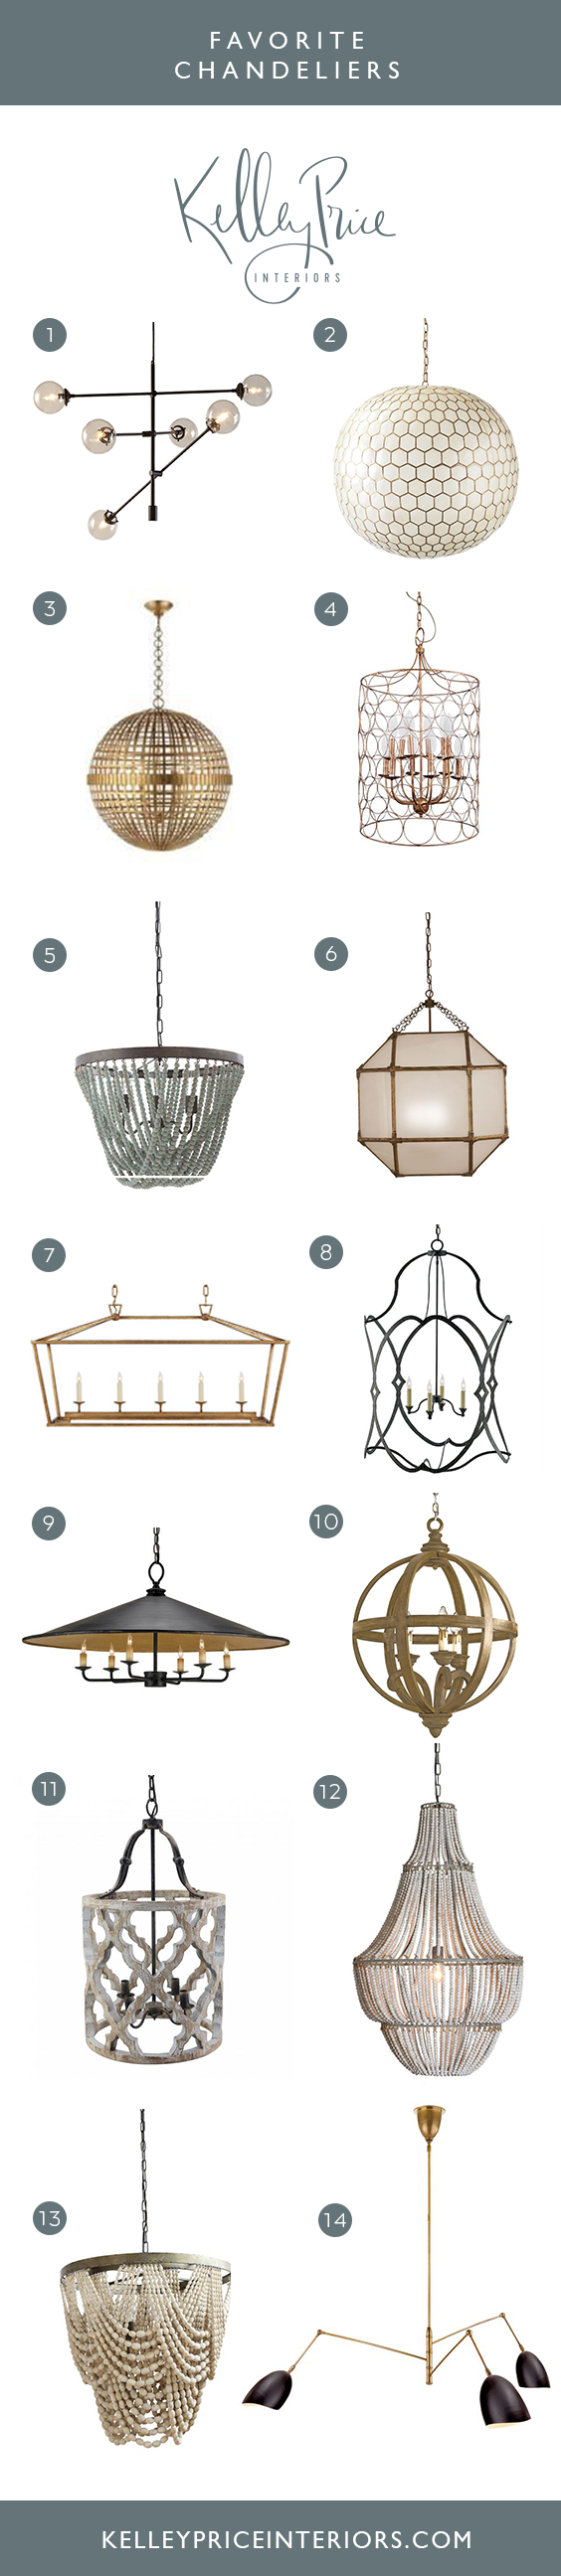 Favorite Chandeliers - Kelley Price Interiors.png